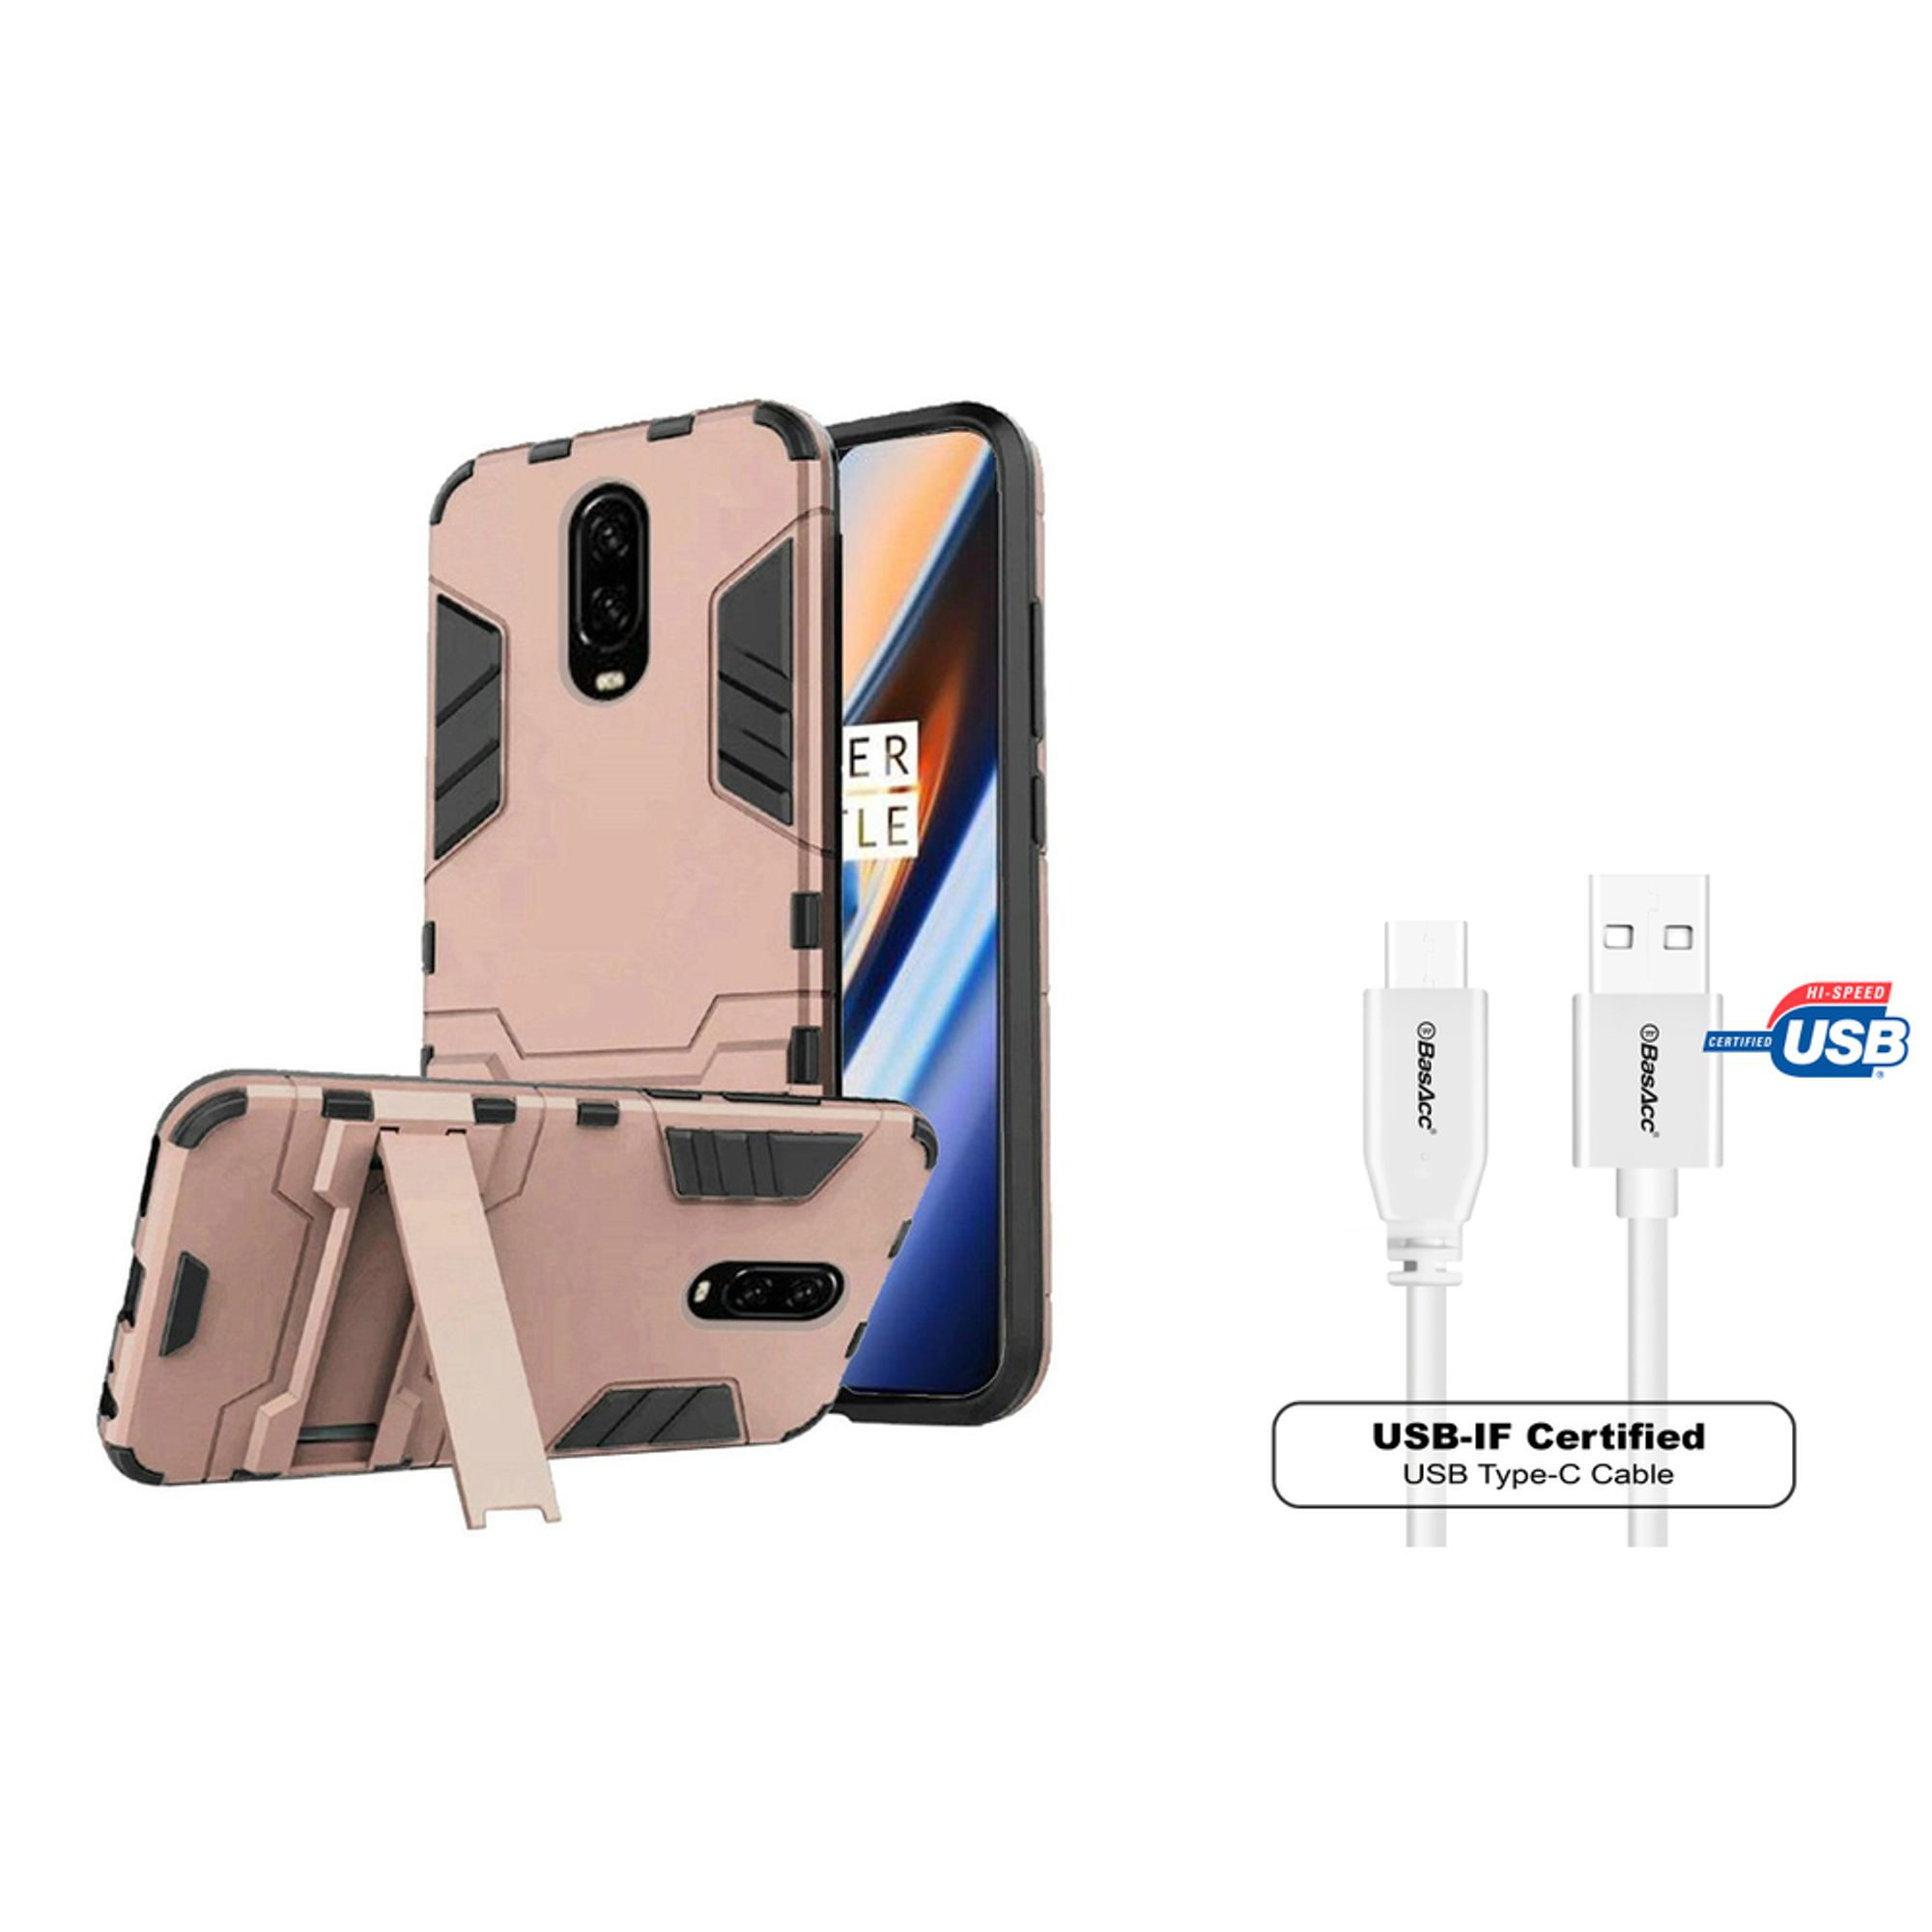 Insten Dynamite Shockproof Dual Layer Hybrid Stand PC/TPU Rubber Case Cover For OnePlus 6T - Rose Gold (Bundle with USB Type C Cable)